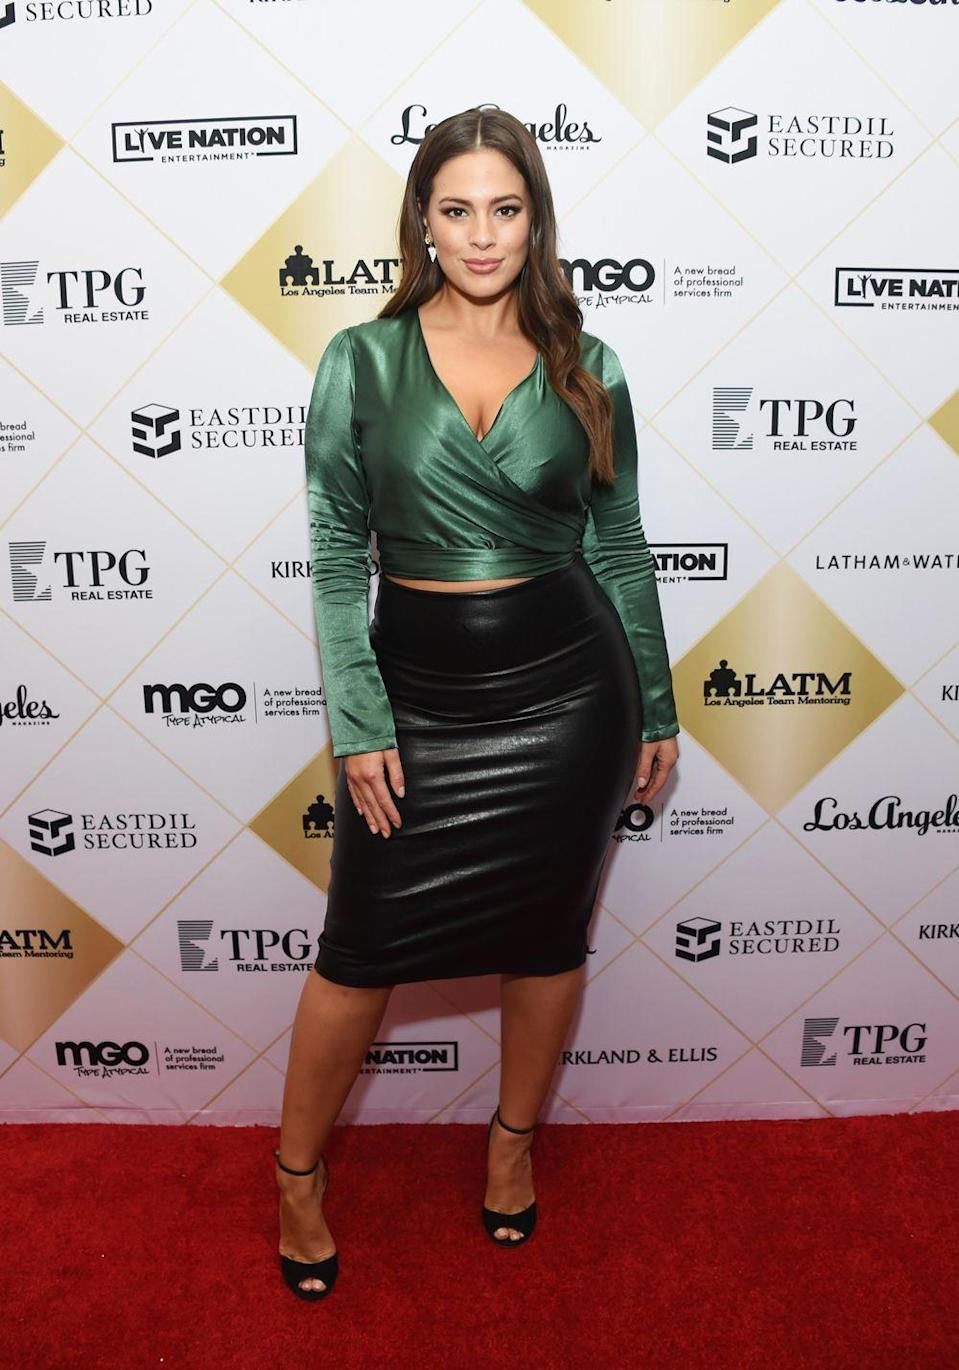 <p>Attending an event in LA: Looking like the hottest woman to ever walk planet earth. Ashley floored us with this black leather midi skirt and emerald green silk wrap shirt. We will be attempting to replicate this outfit immediately.</p>